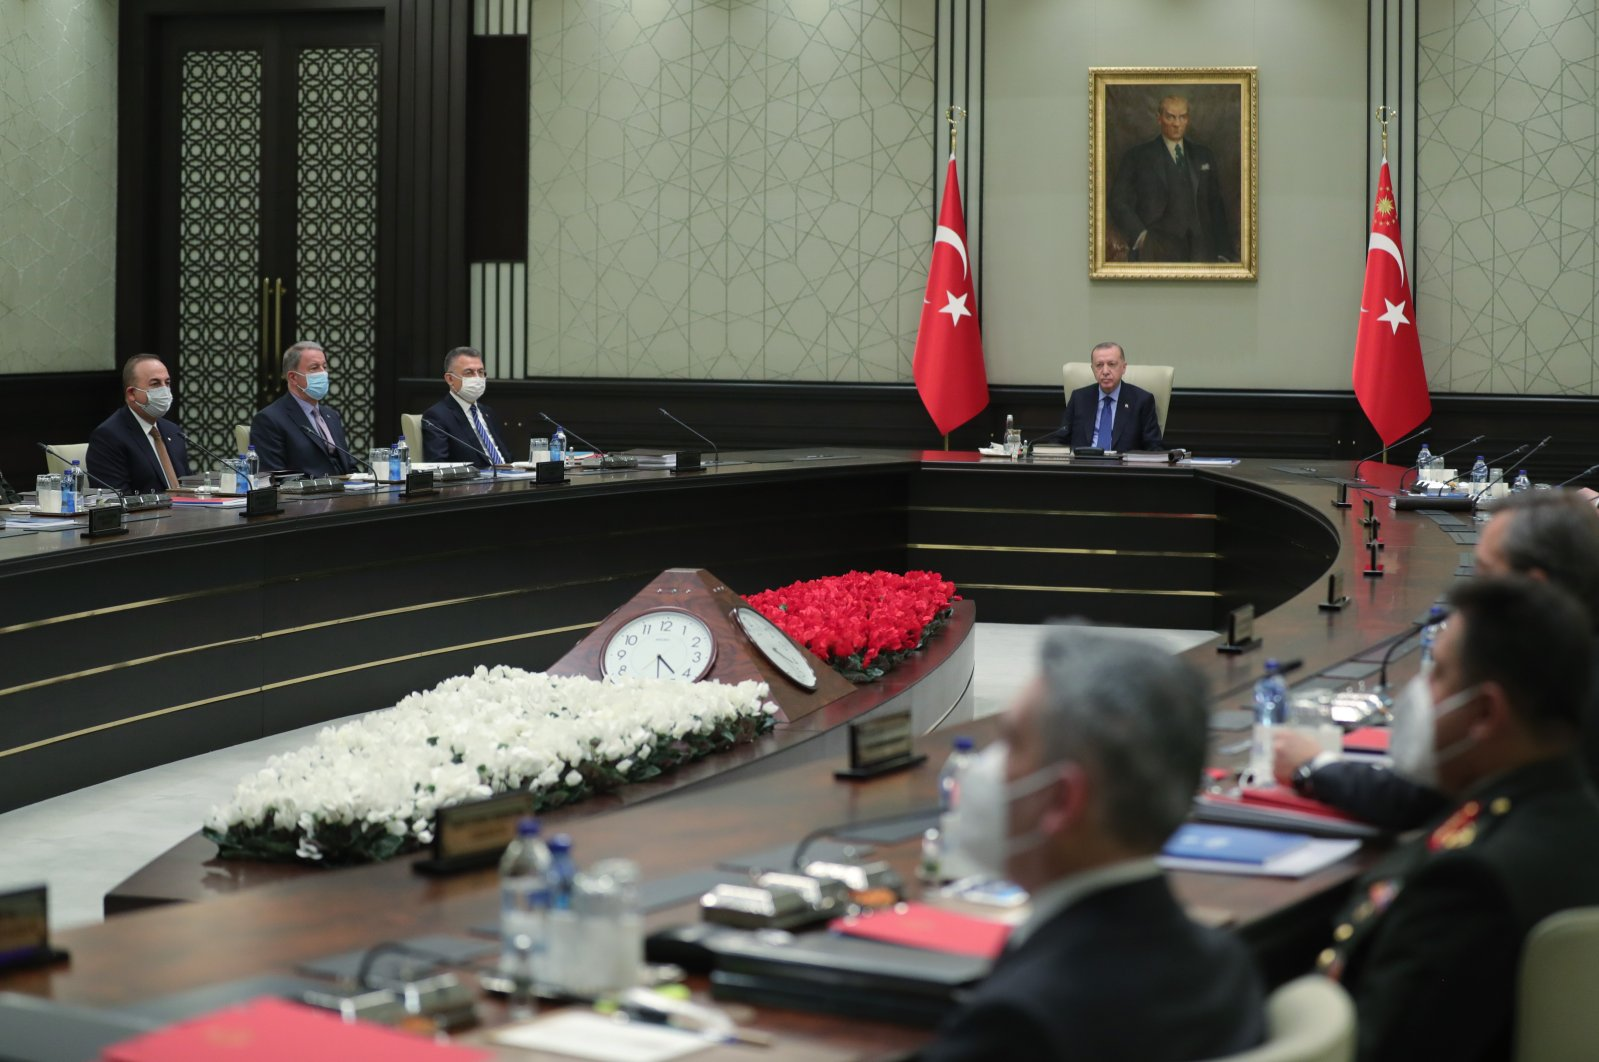 National Security Council (MGK) under the chairmanship of President Recep Tayyip Erdoğan is seen in this photo taken in Ankara's Presidential Complex on Jan. 28, 2021 (AA Photo)